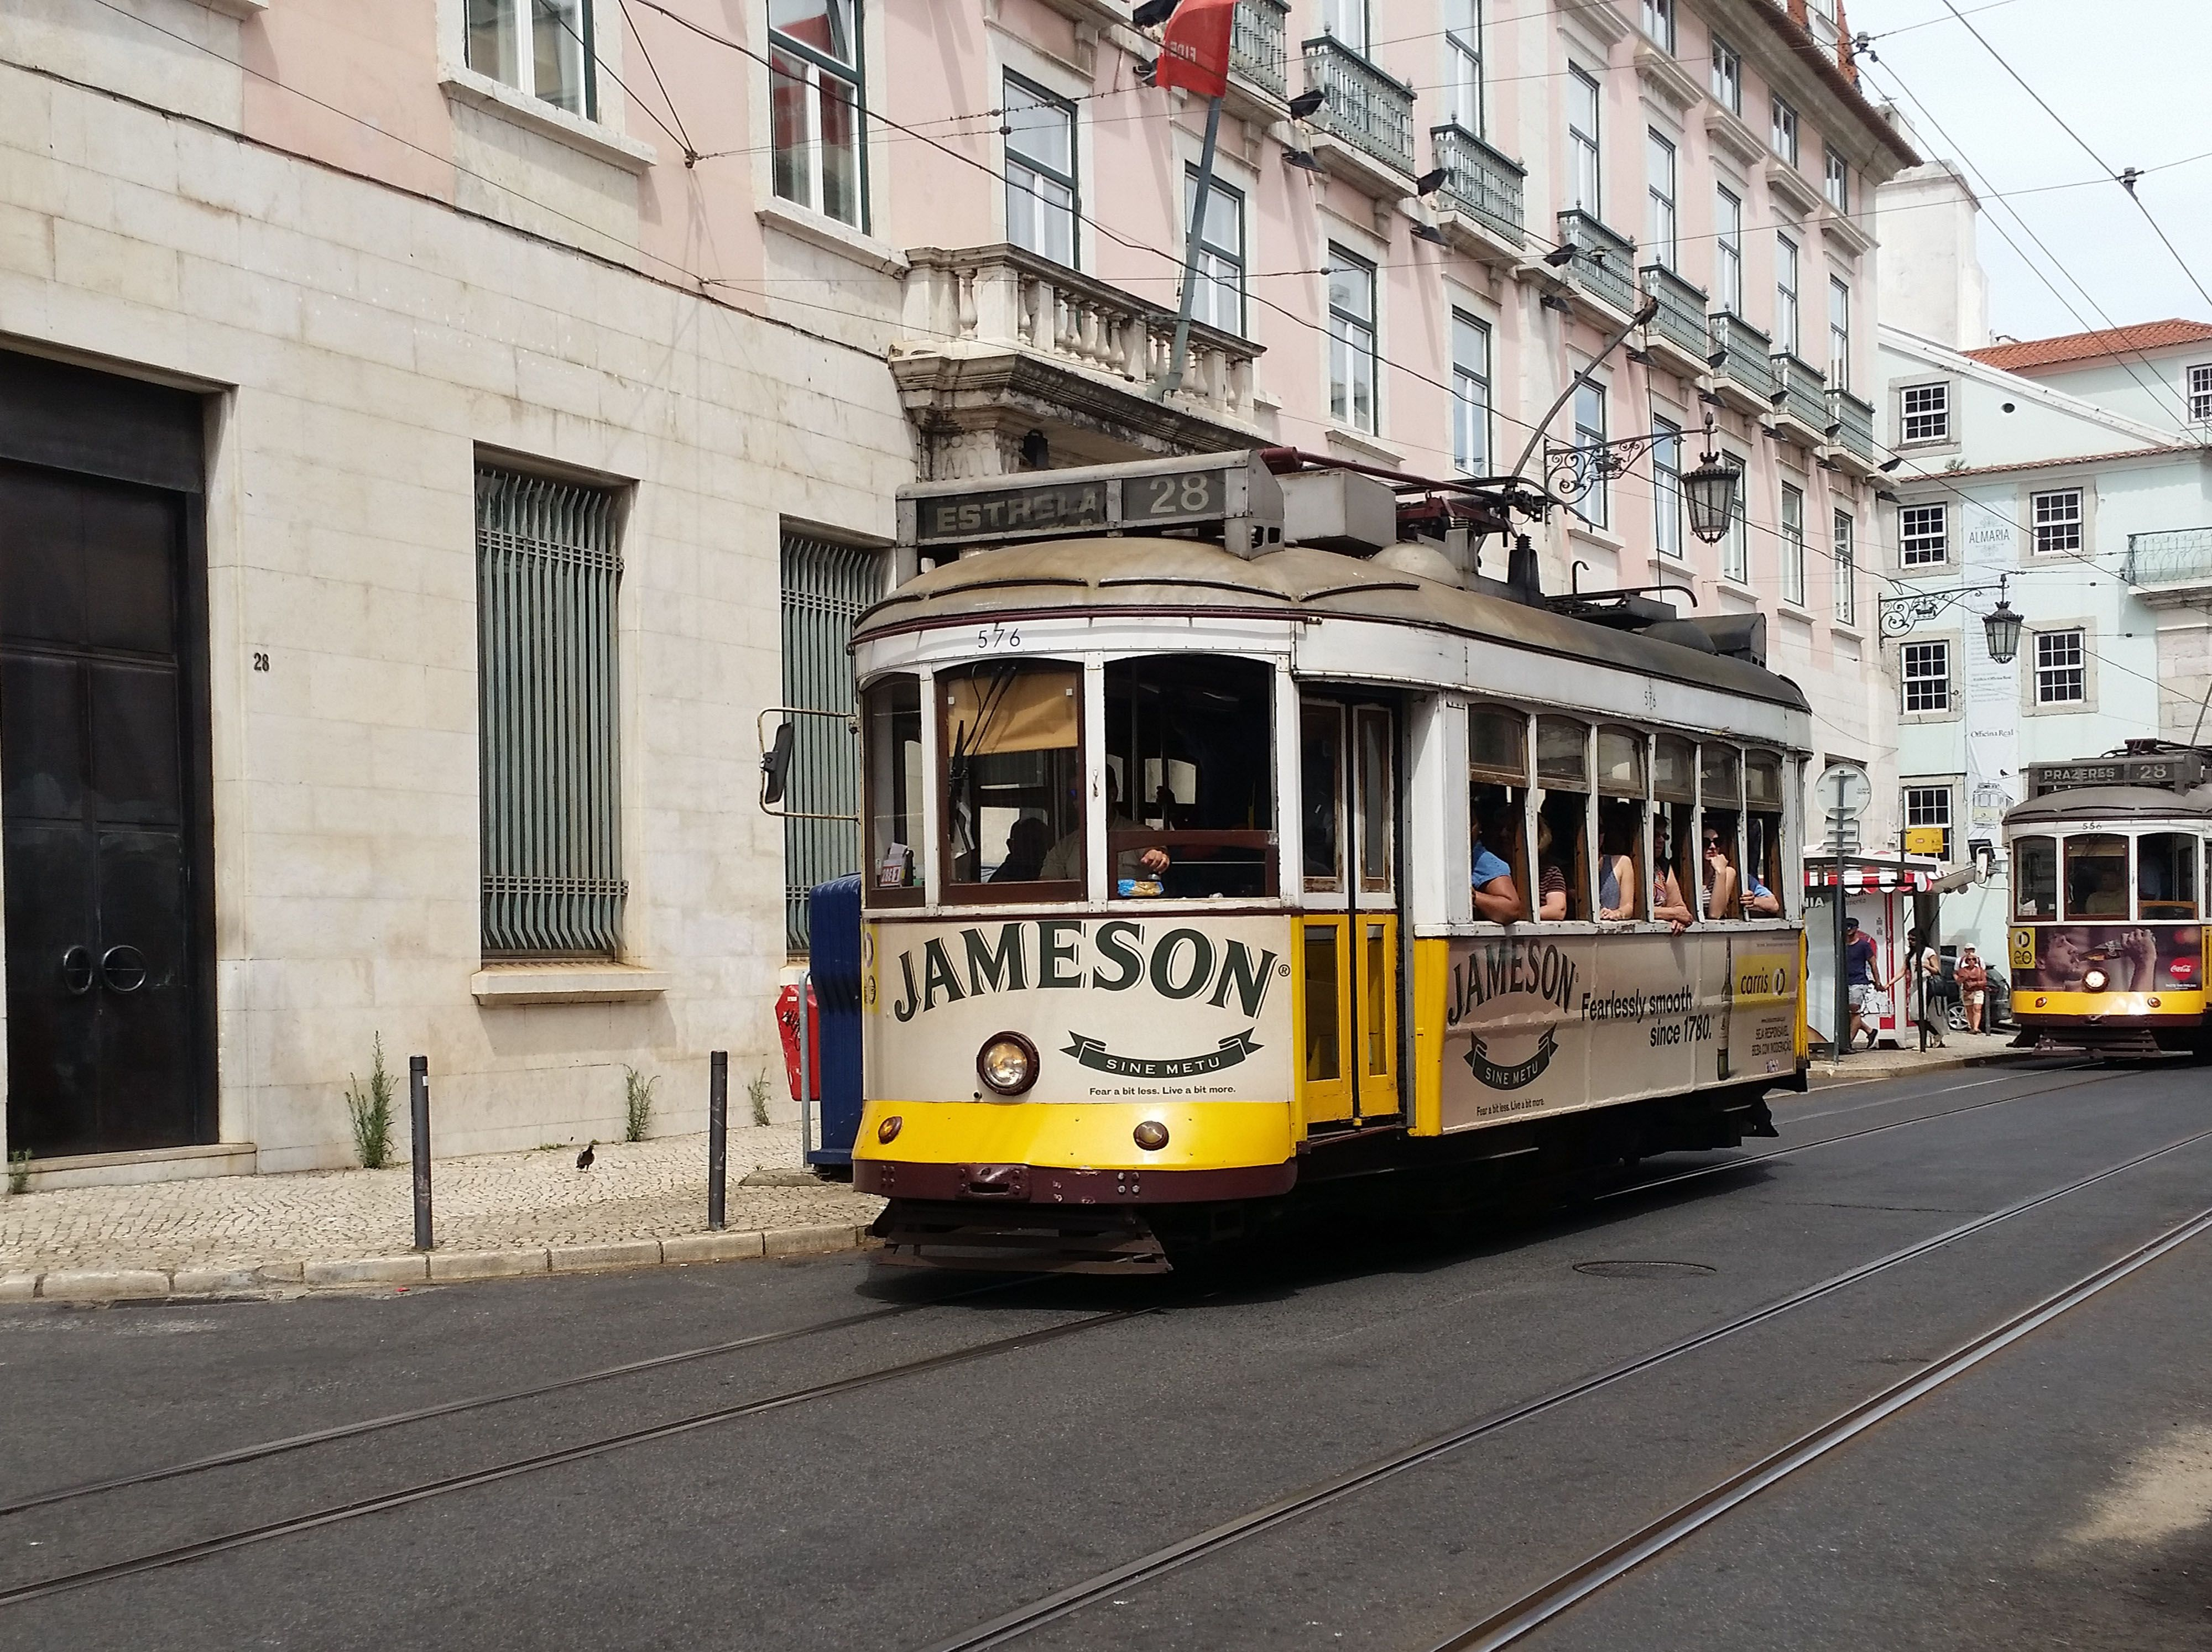 Tram in Lisboa. Best way to see the city.